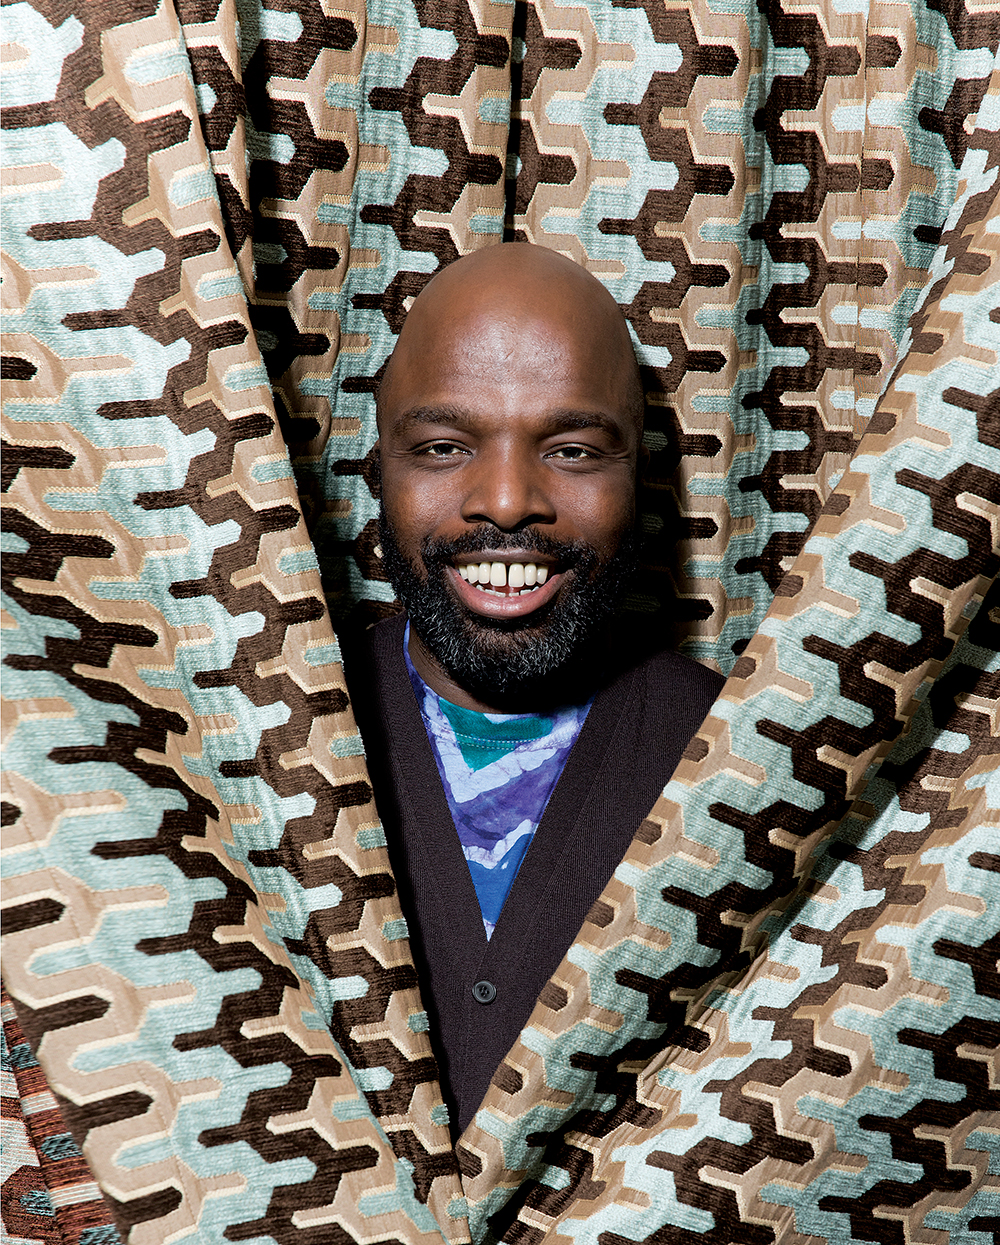 Duro Olowu is a Nigerian-born, London-based fashion designer. He is best known for his innovative combinations of patterns and textiles that draw inspiration from his international background. His empire waist patchwork {quote}Duro{quote} dress was named {quote}dress of the year{quote} by both American and British Vogue in 2005. Some of Olowu's notable clients include Michelle Obama, Solange Knowles, and Iris Apfel. In 2005 he won {quote}New Designer of the Year{quote} at the British Fashion awards, the first designer to win without ever showing a runway presentation.